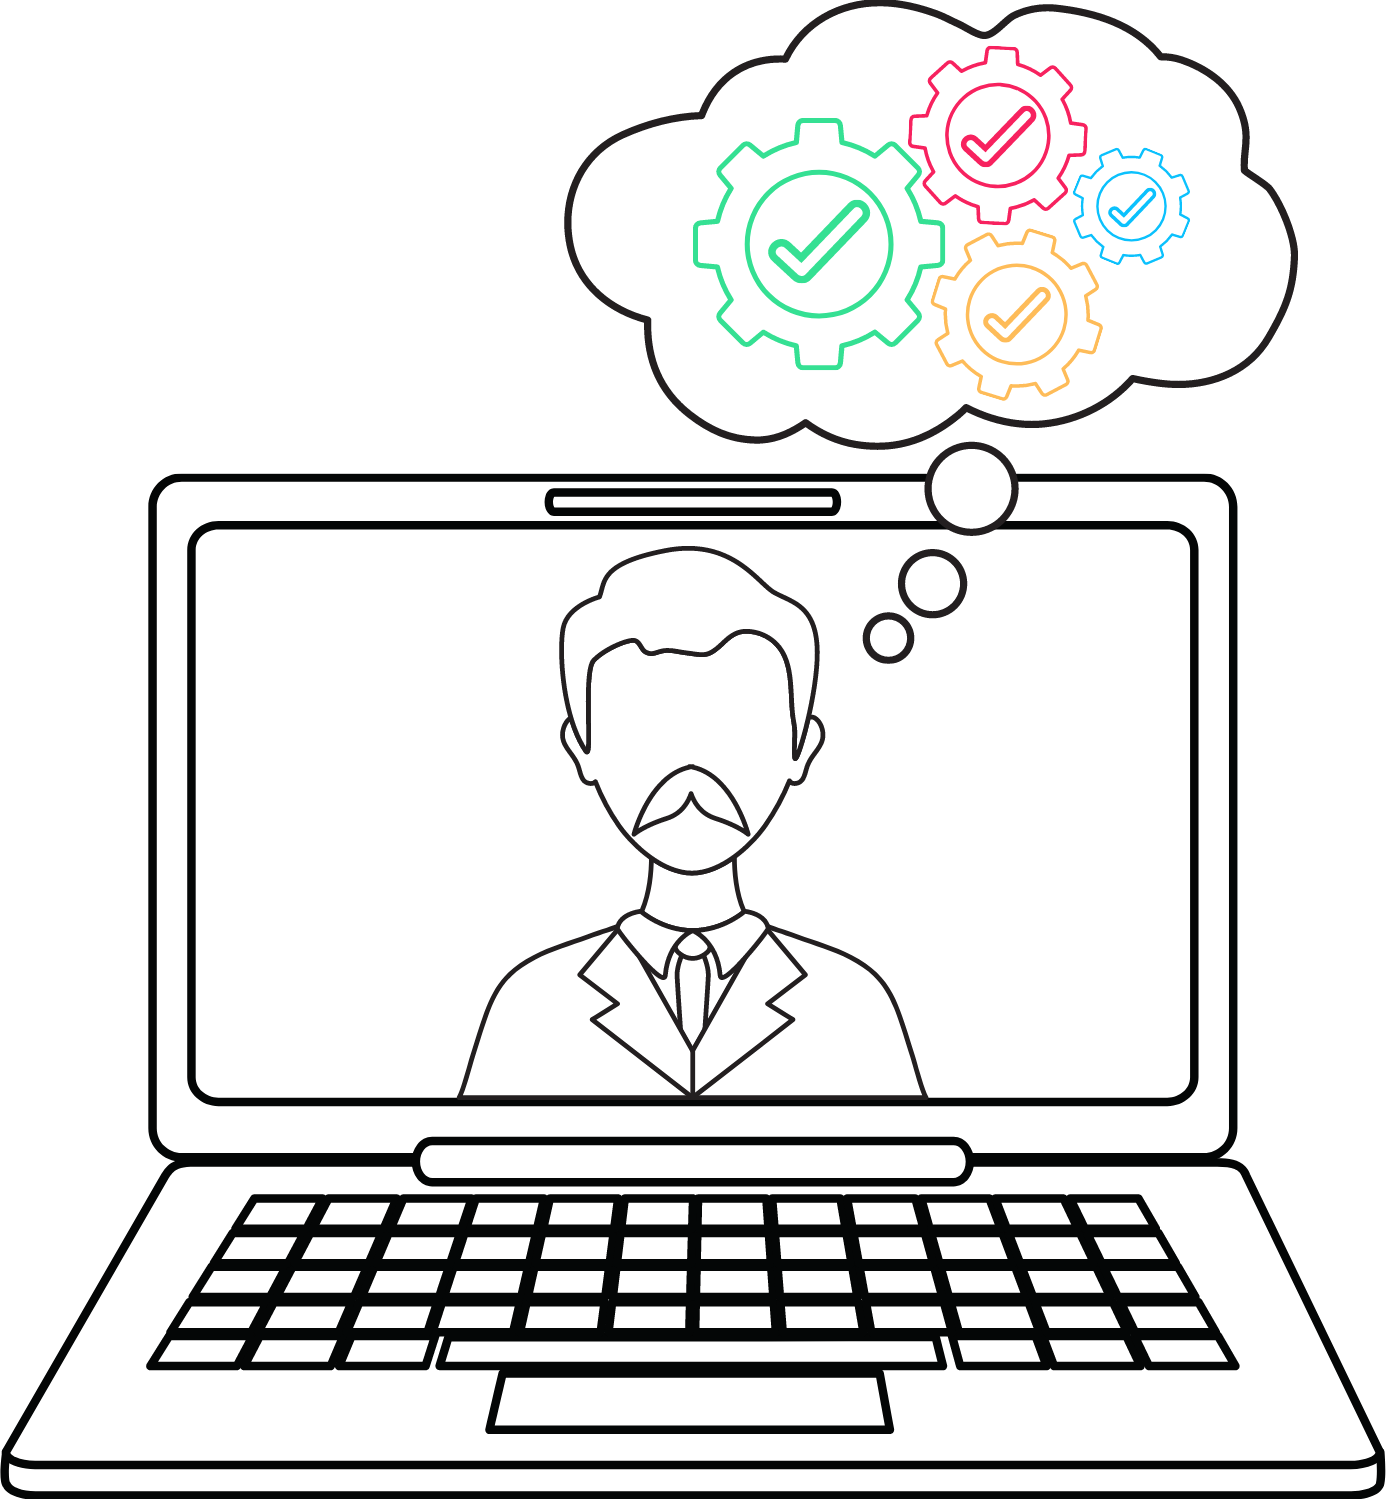 Drawing of a laptop with a mustached man in a suit inside the screen. The man has a thought bubble with 4 settings wheels inside the bubble. Each settings wheel contains a checkmark.